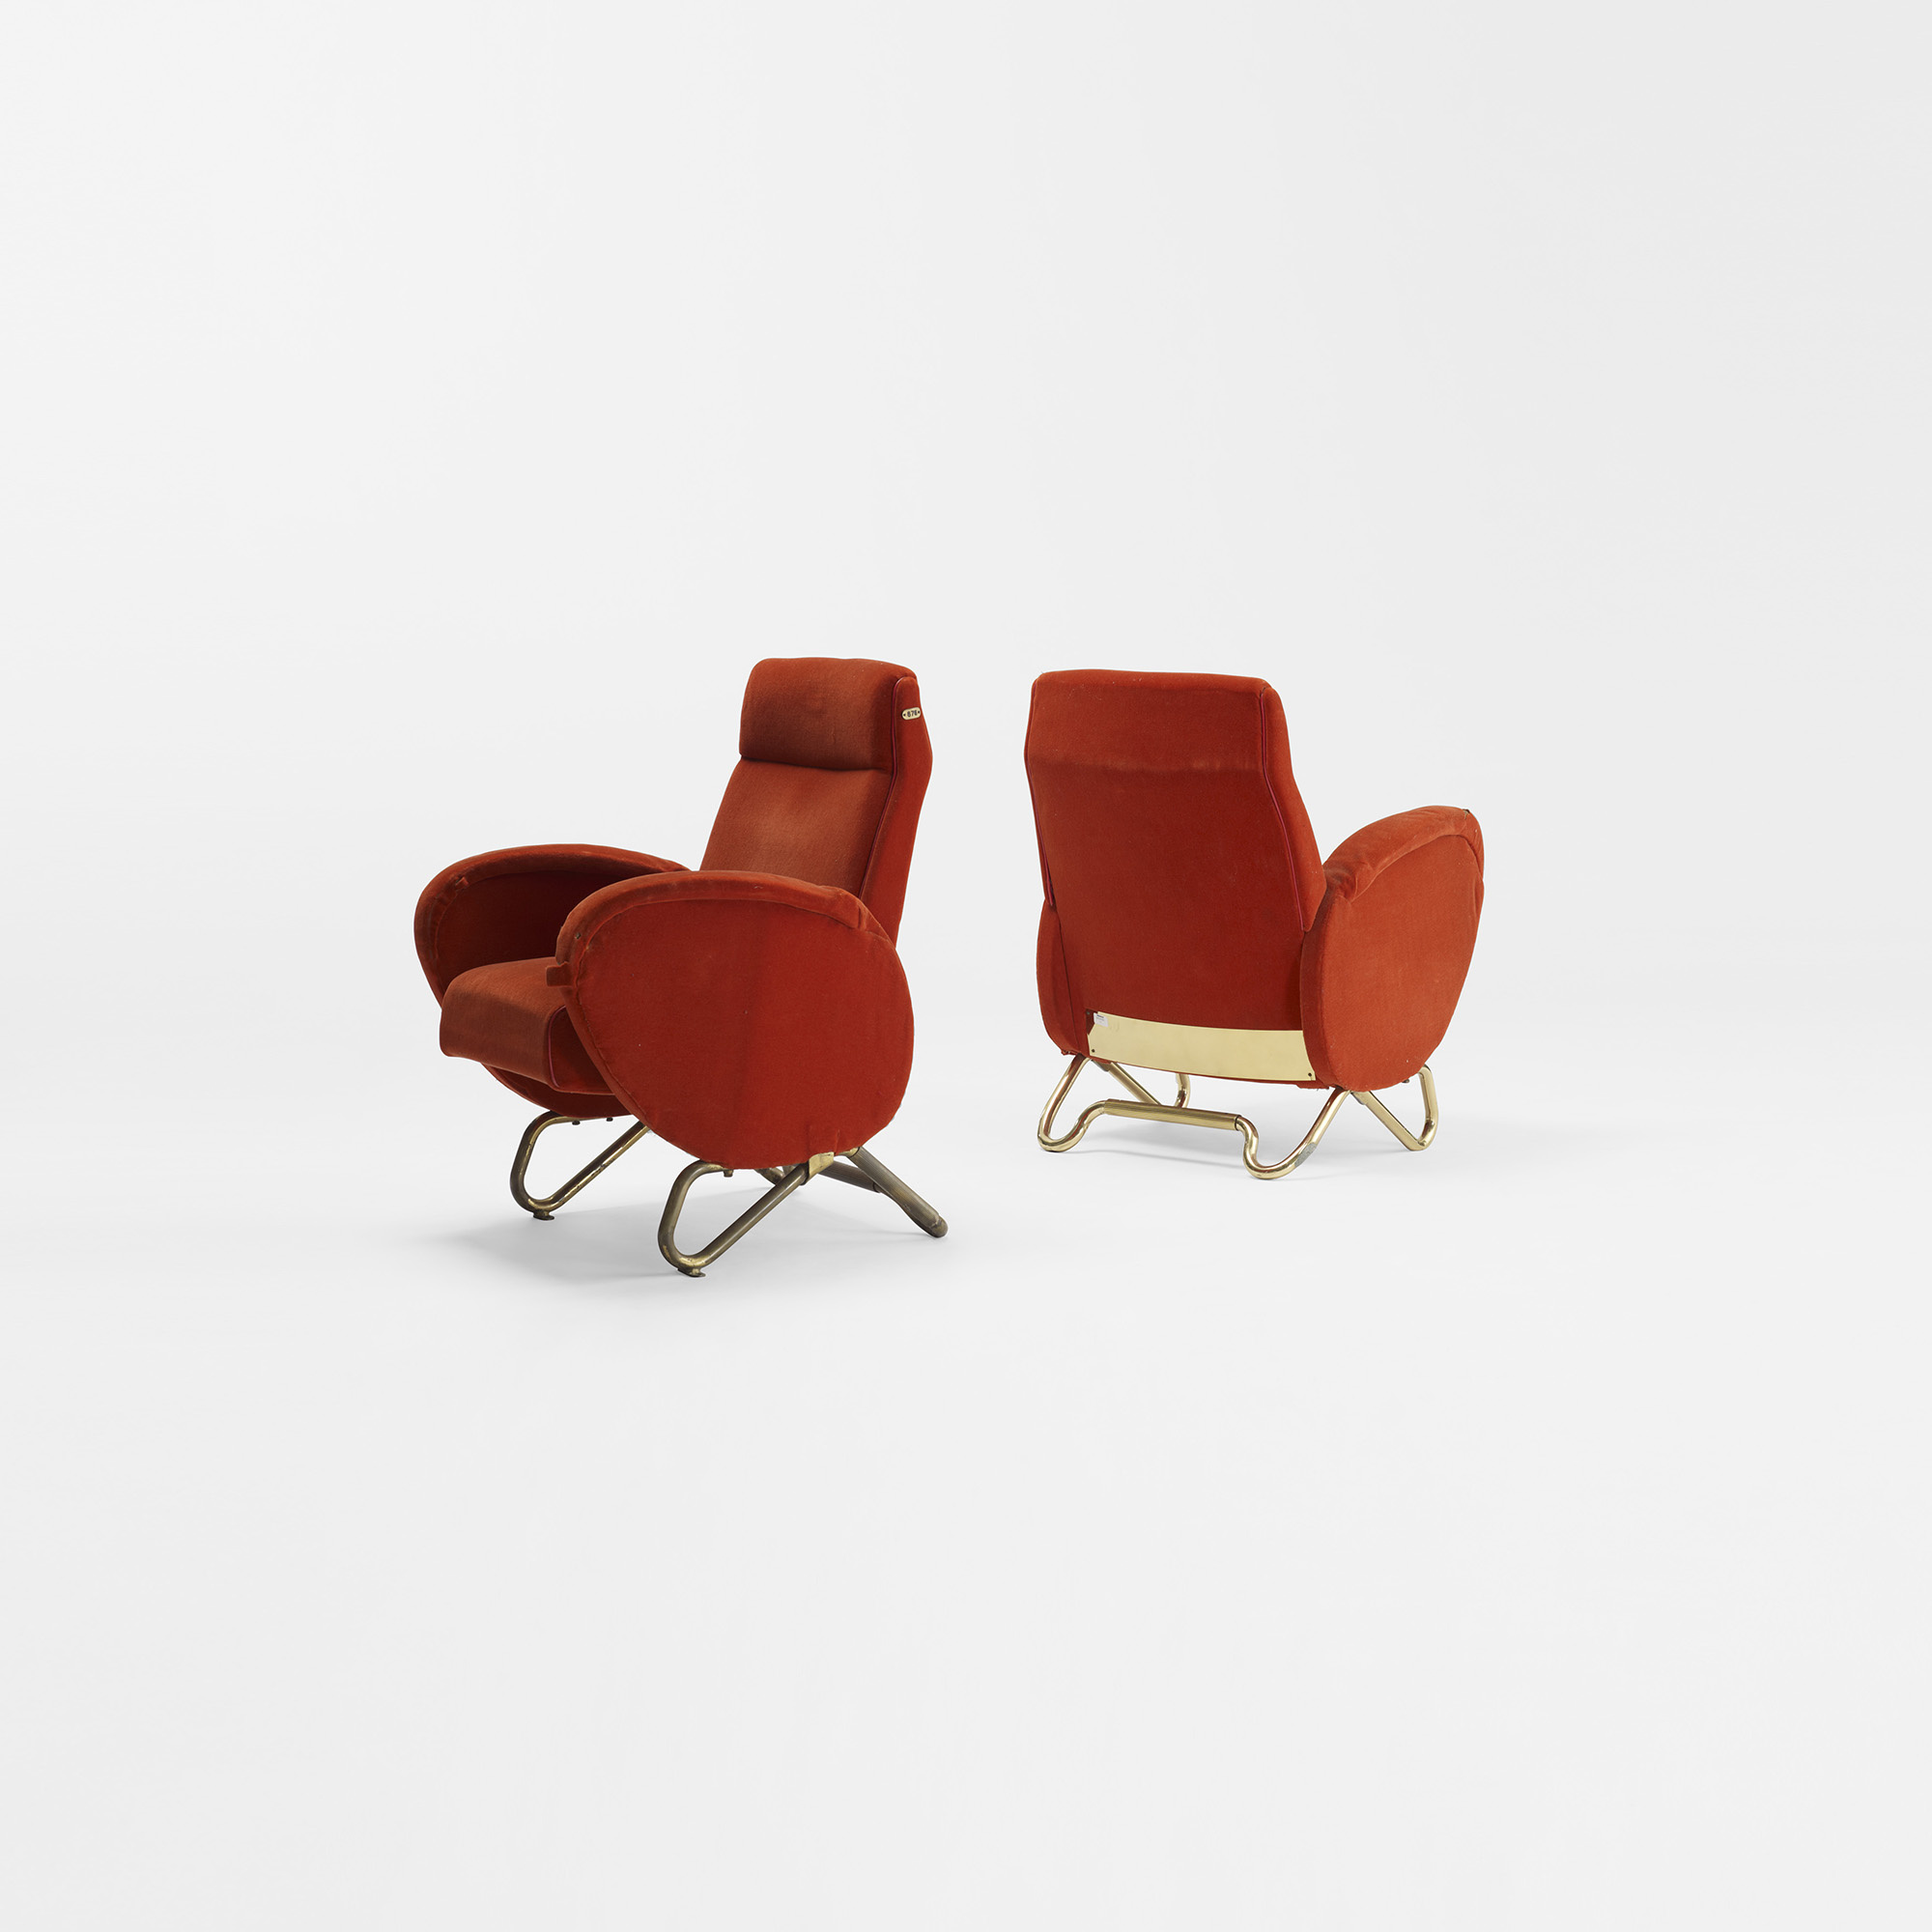 312 Carlo Mollino pair of theater chairs from the RAI